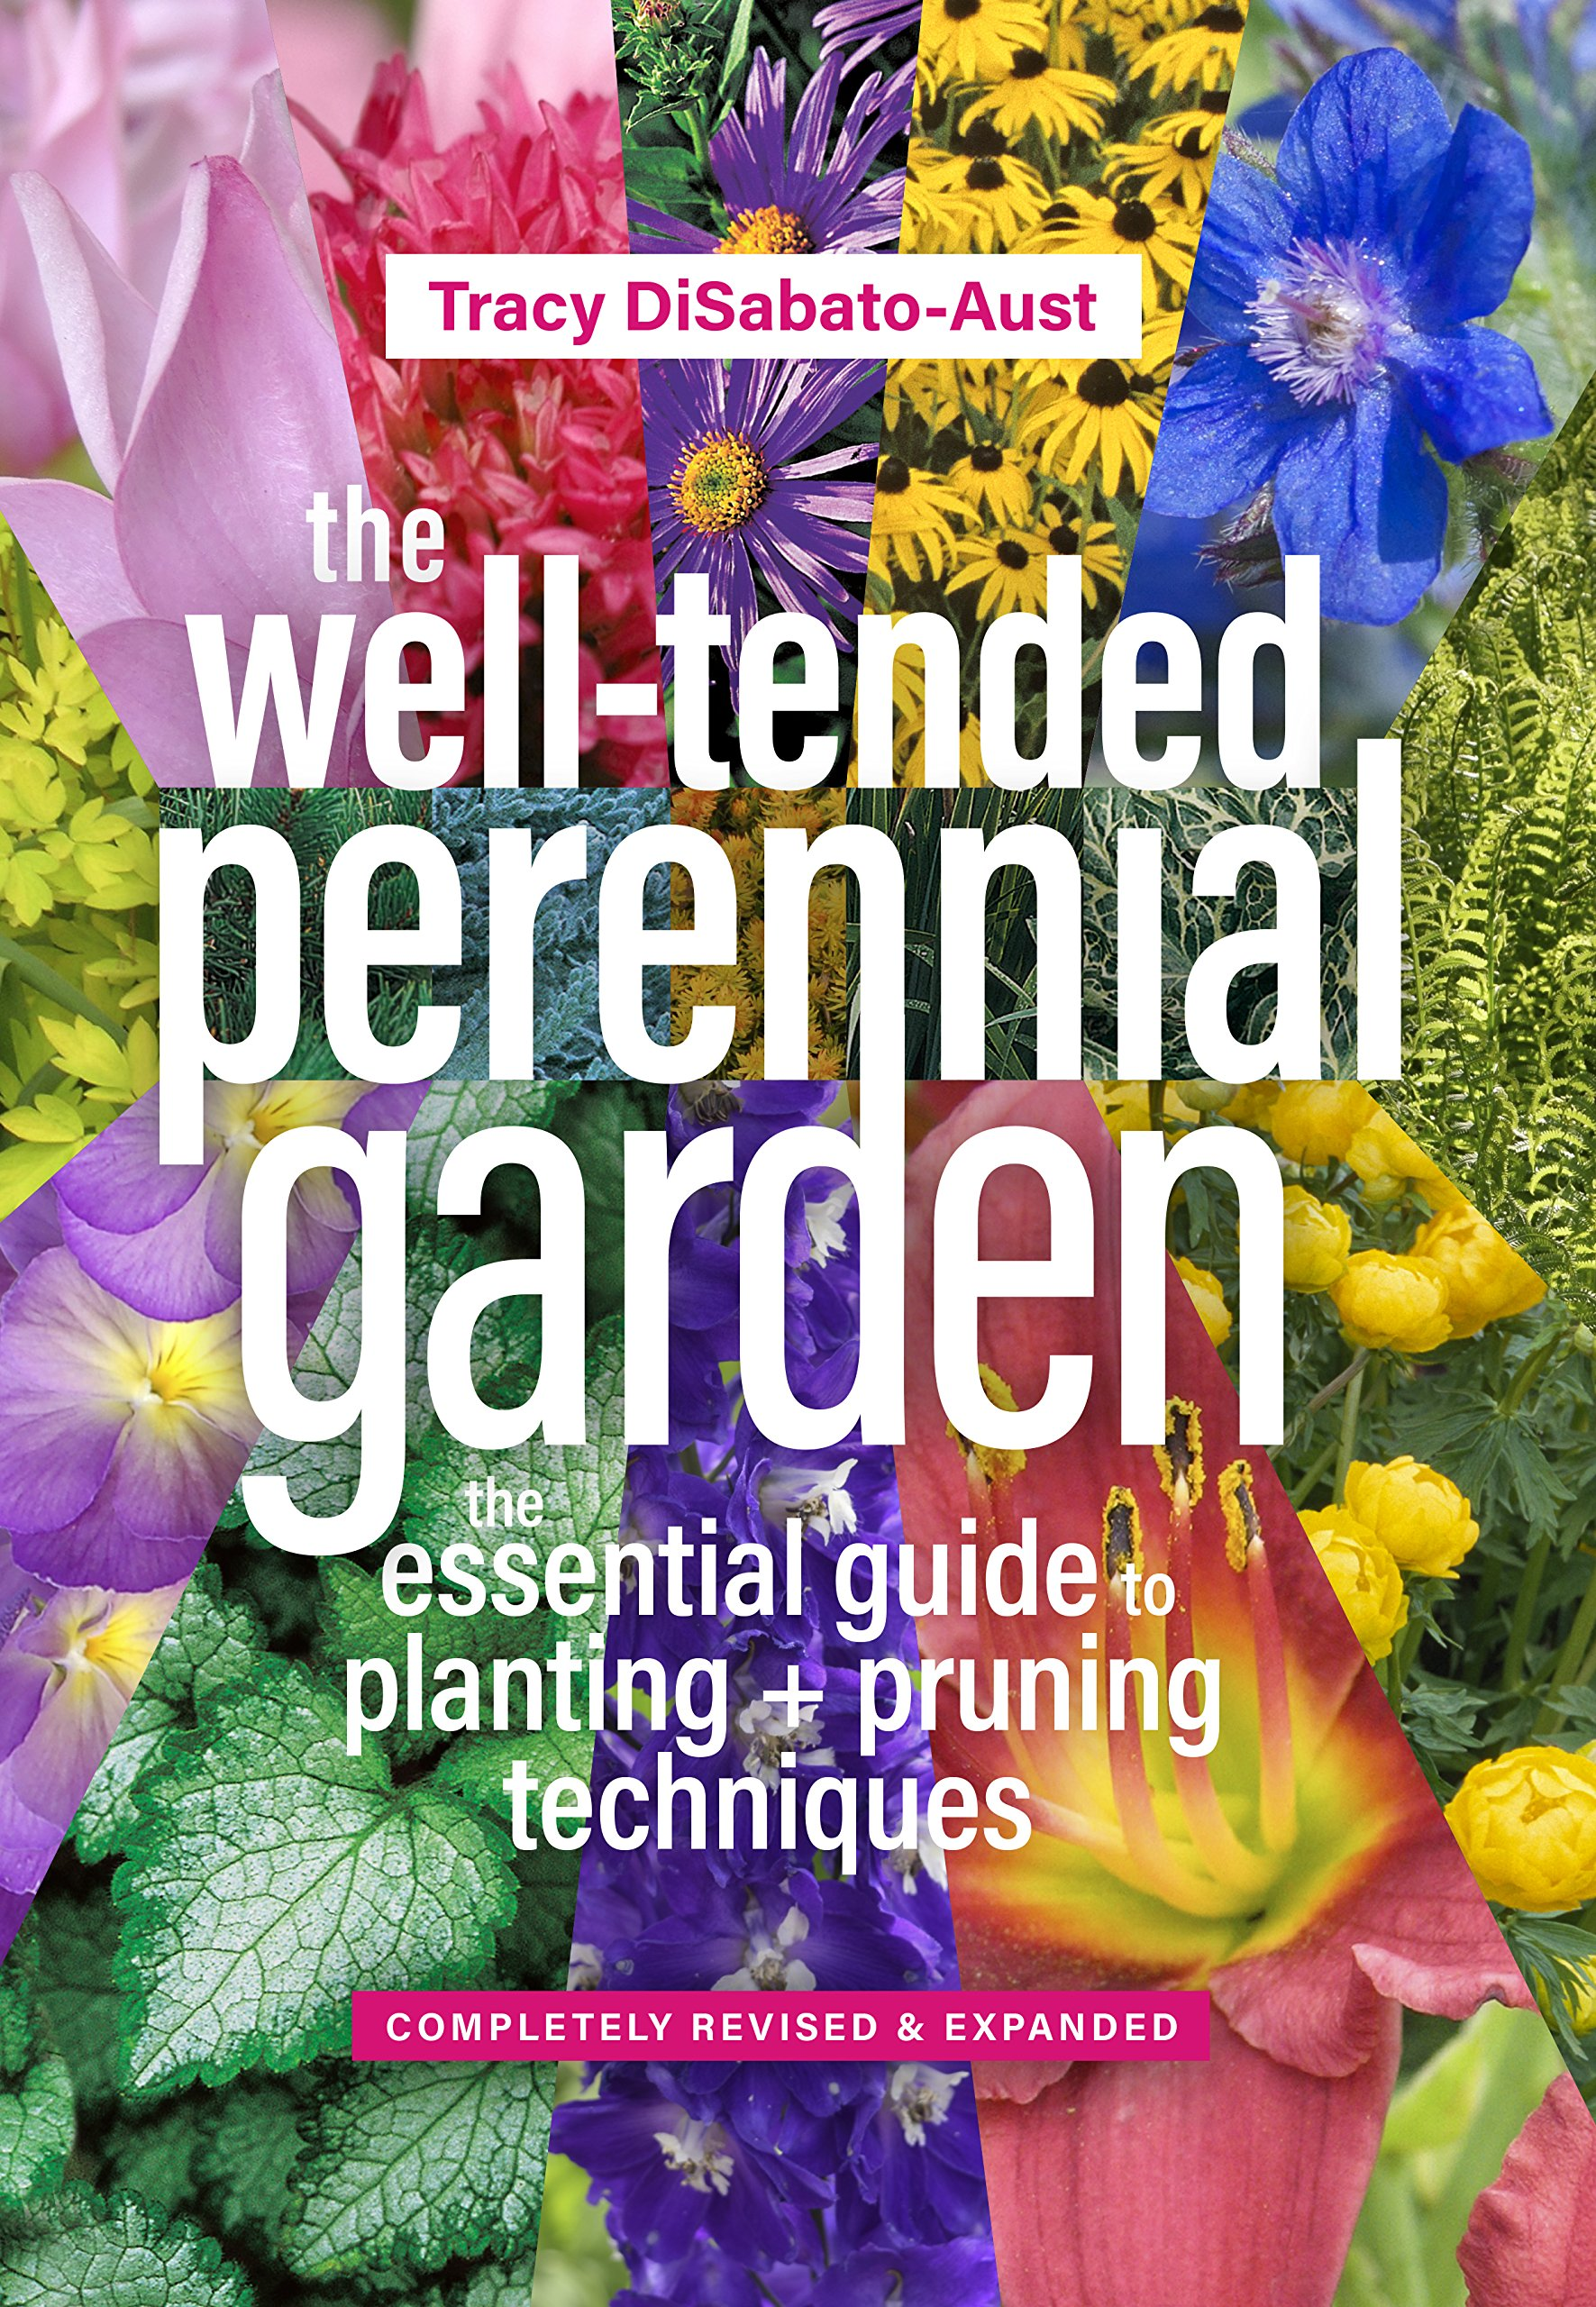 The Well-Tended Perennial Garden: The Essential Guide to Planting and Pruning Techniques, Third Edition by Timber Press